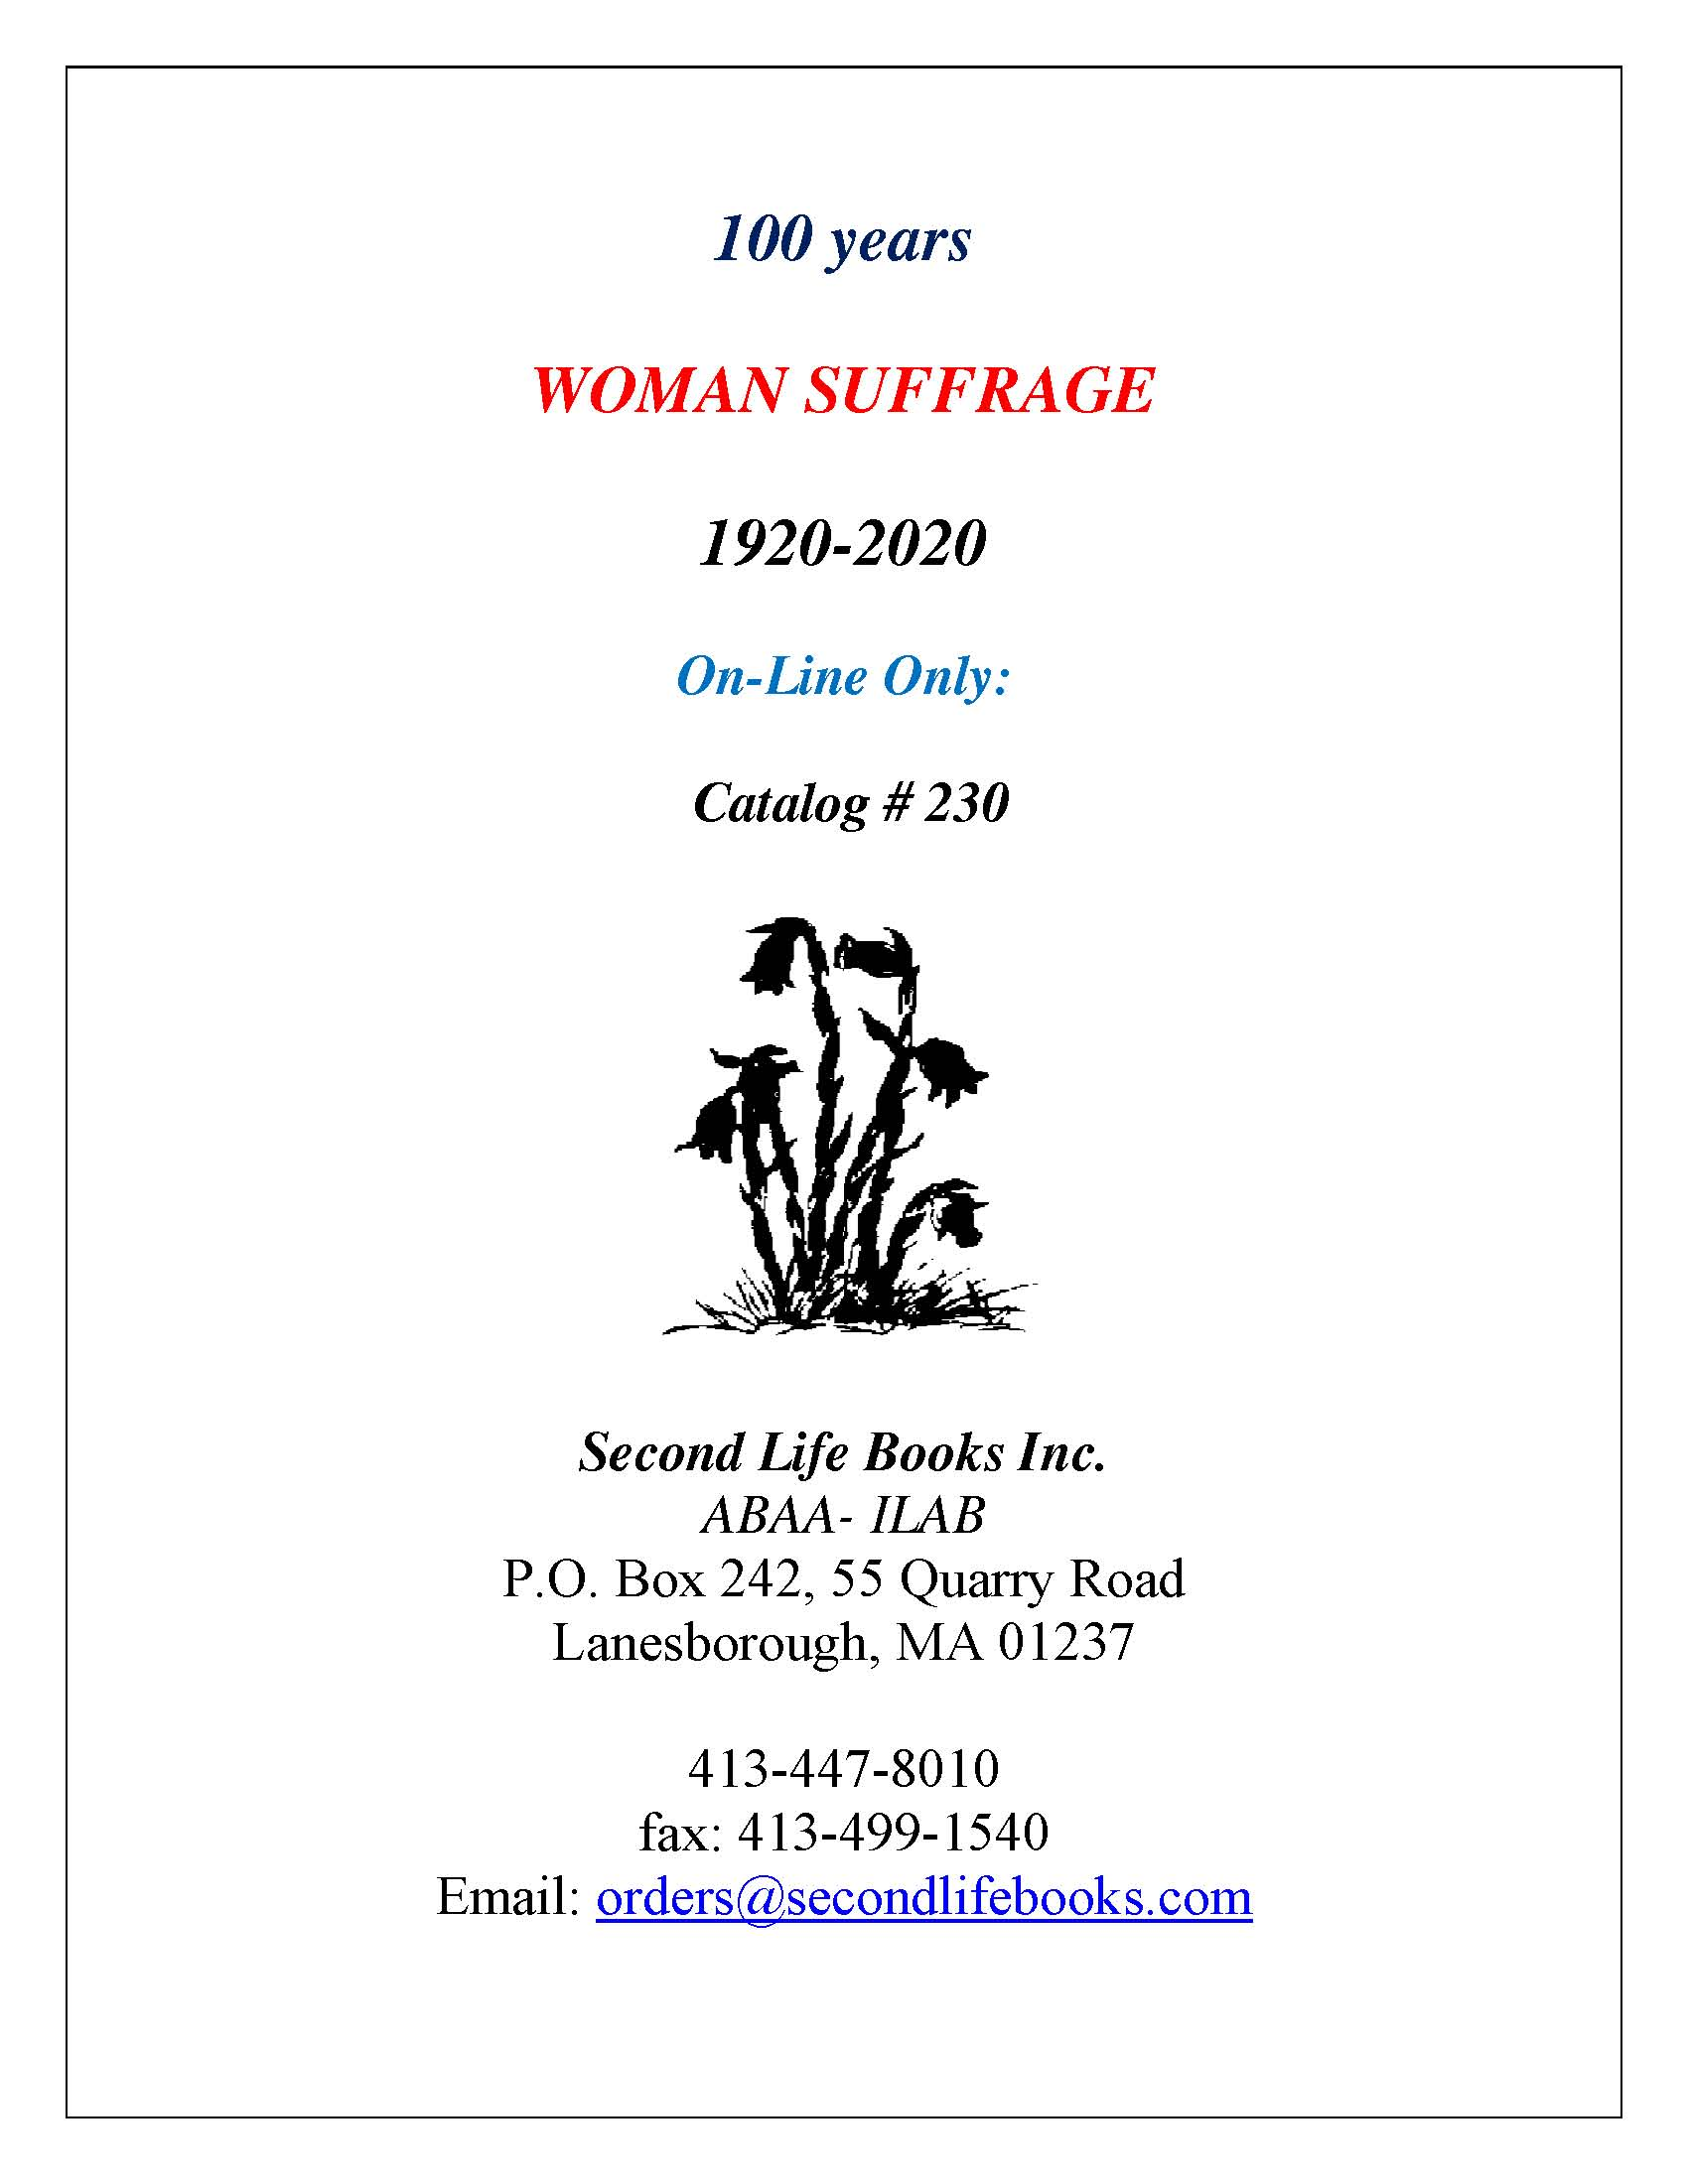 Woman Suffrage: 1920-2020